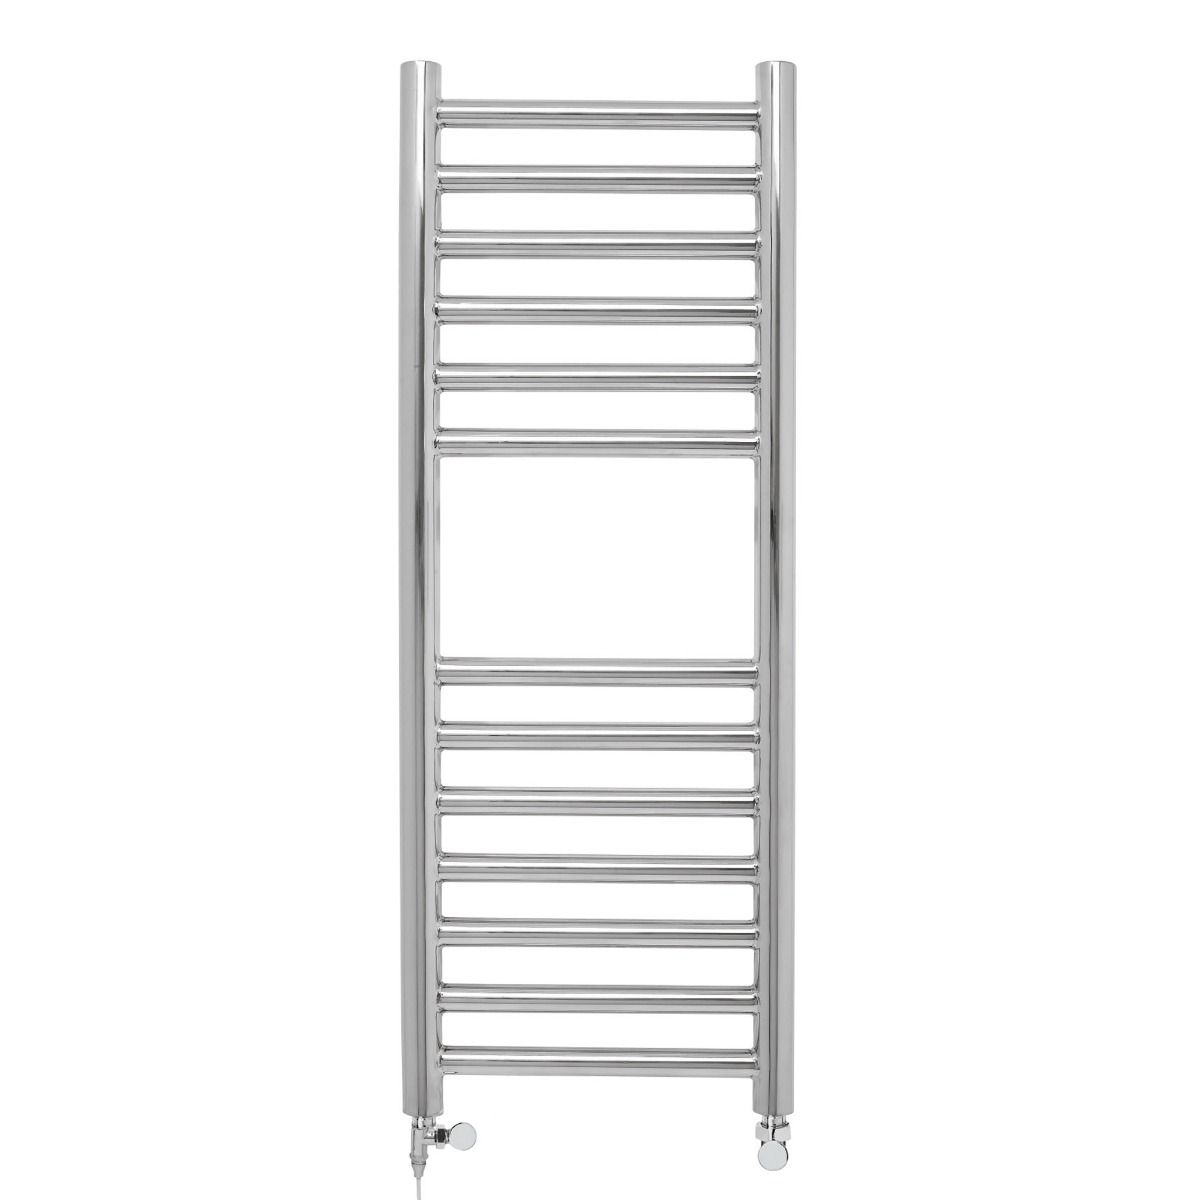 Stainless Steel Heated Towel Rail 80x60